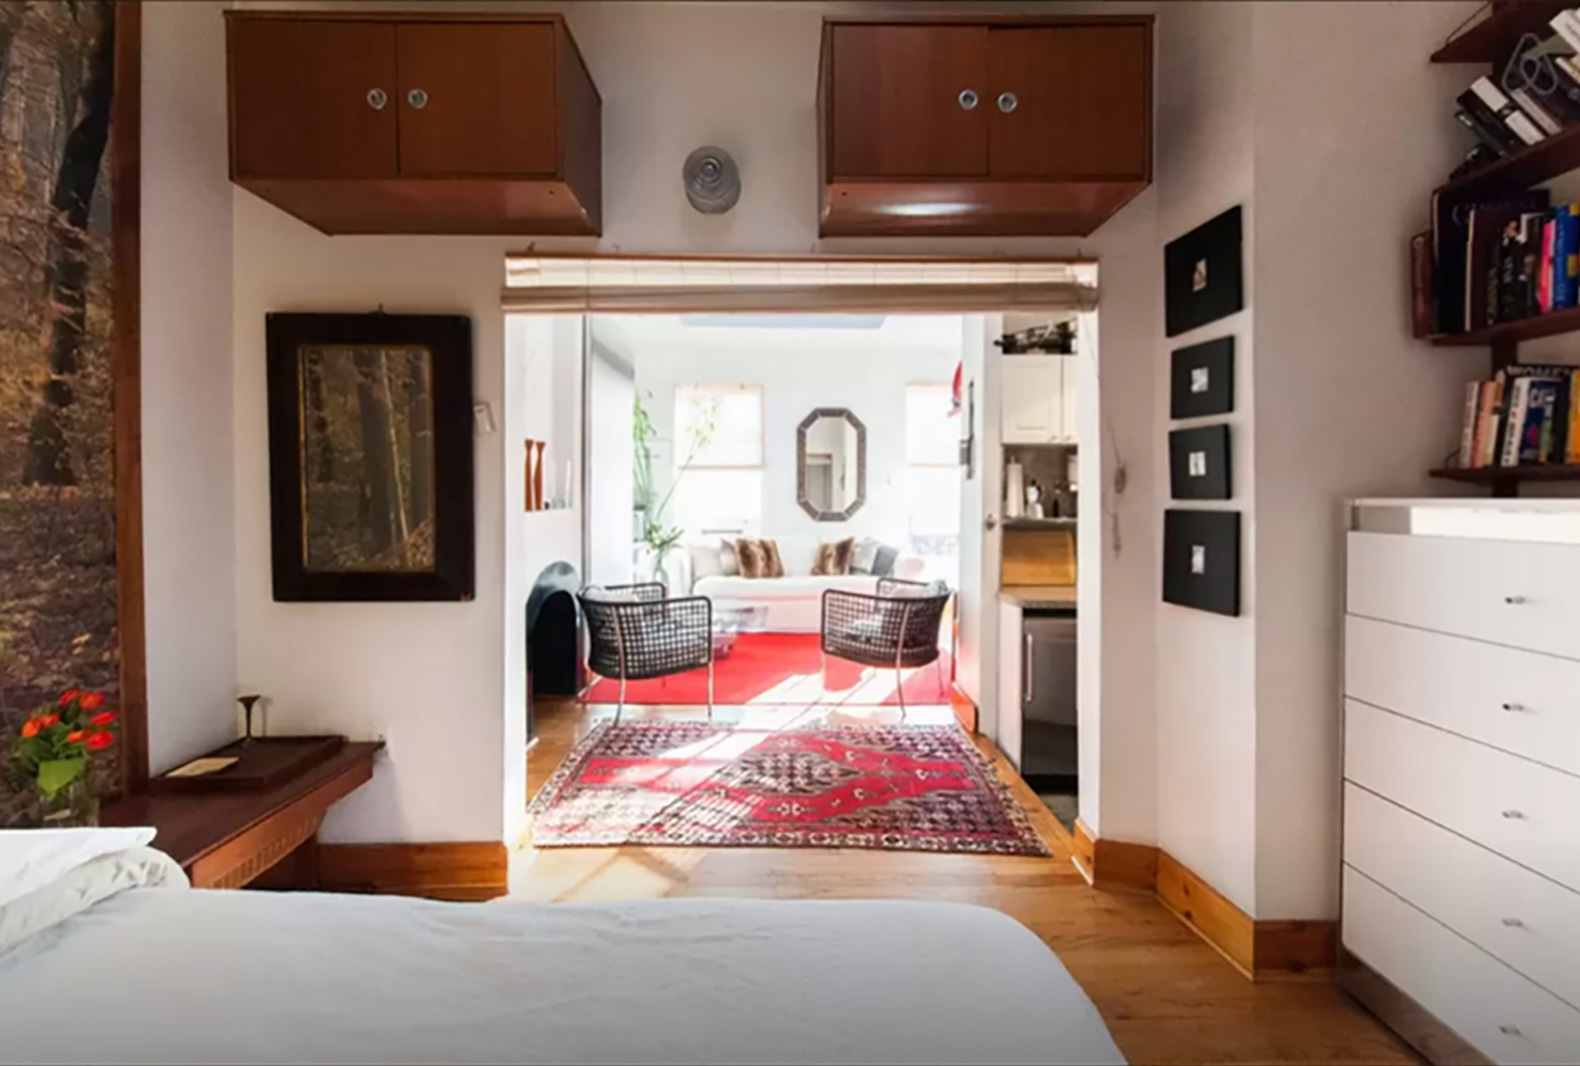 Stylish 325 Sq Ft Studio Uses Clever Design To Create The Feeling Of More Space Greenwich Village Tiny Apartment Inhabitat